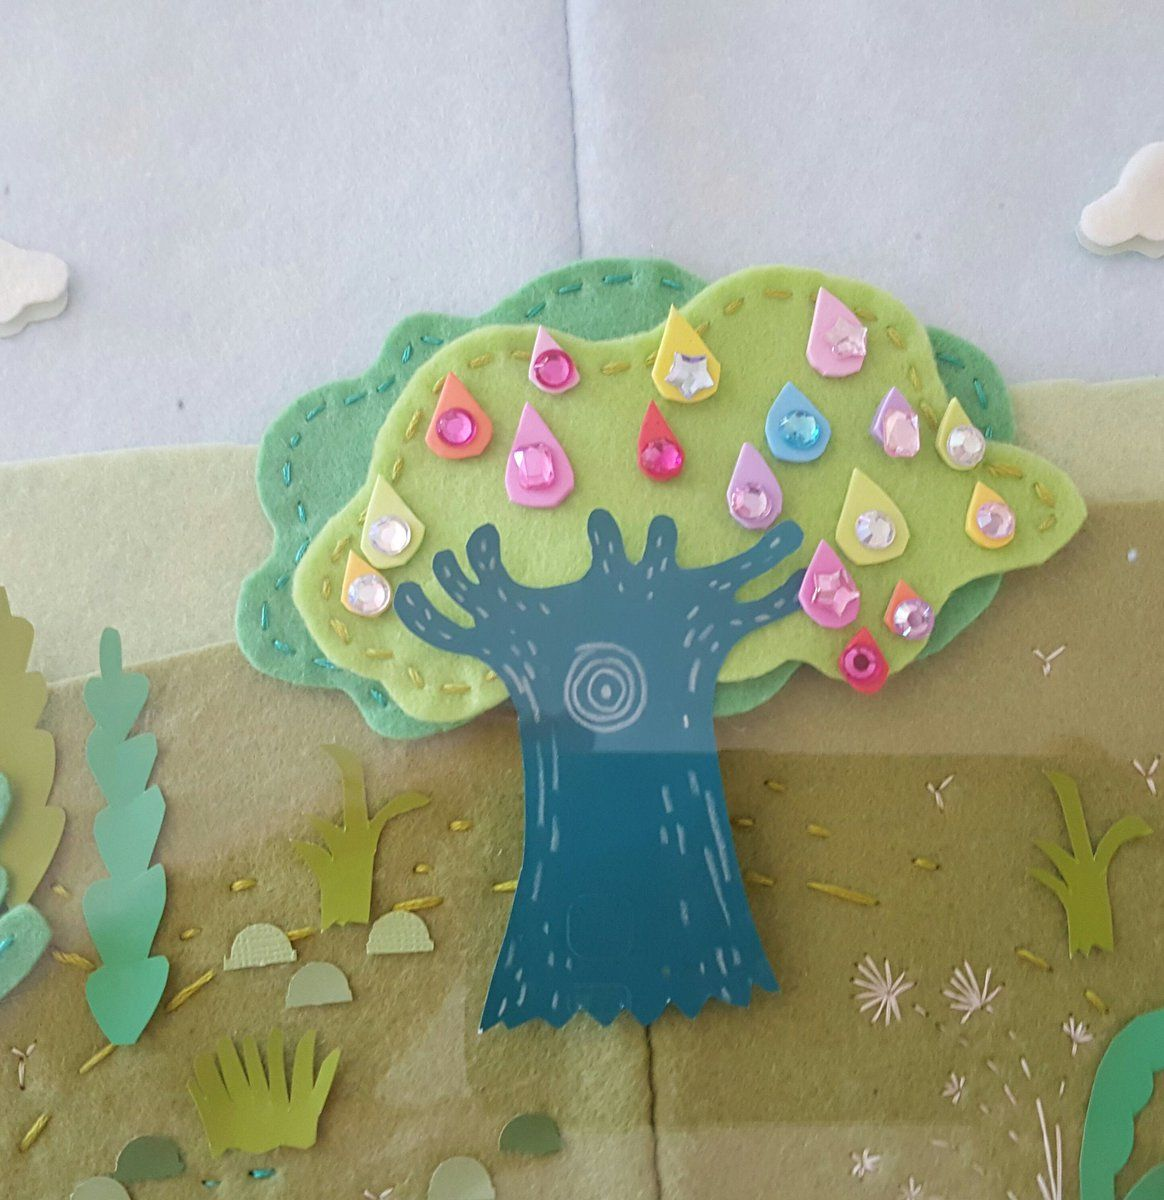 How to scrapbook like poppy - Image Result For Trolls Scrapbook